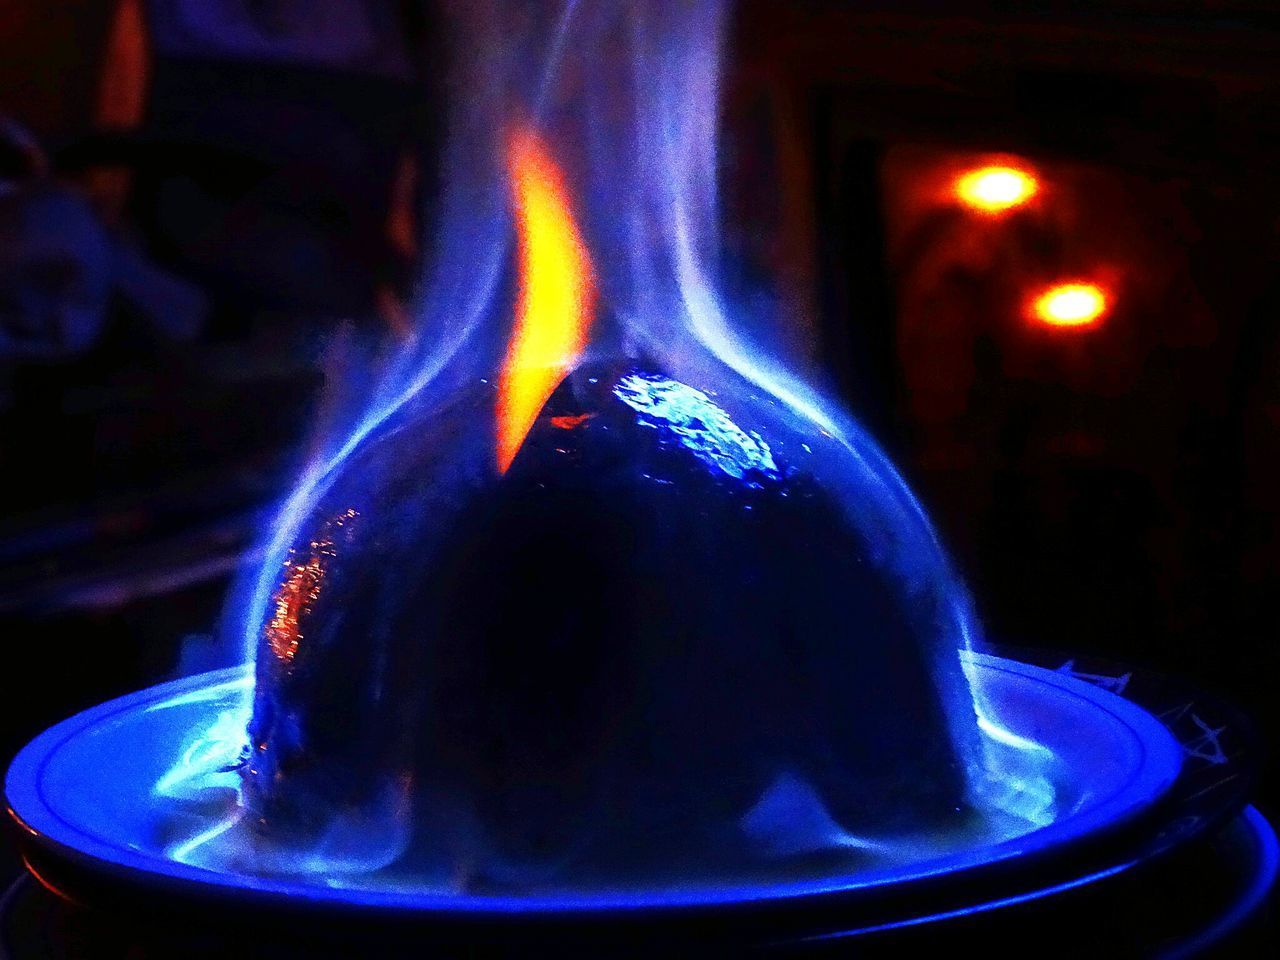 Christmas pudding. Close-up Blue Heat - Temperature Science Flame Burning Indoors  Black Background Xmas Christmas Christmas Pudding Plumb Pudding Flambe Flaming Flame Flame And Food Flames & Fire Festive Festive Feast Christmas Dinner Xmas Dinner Christmas Lunch Xmas Lunch Alight Alightinthedark